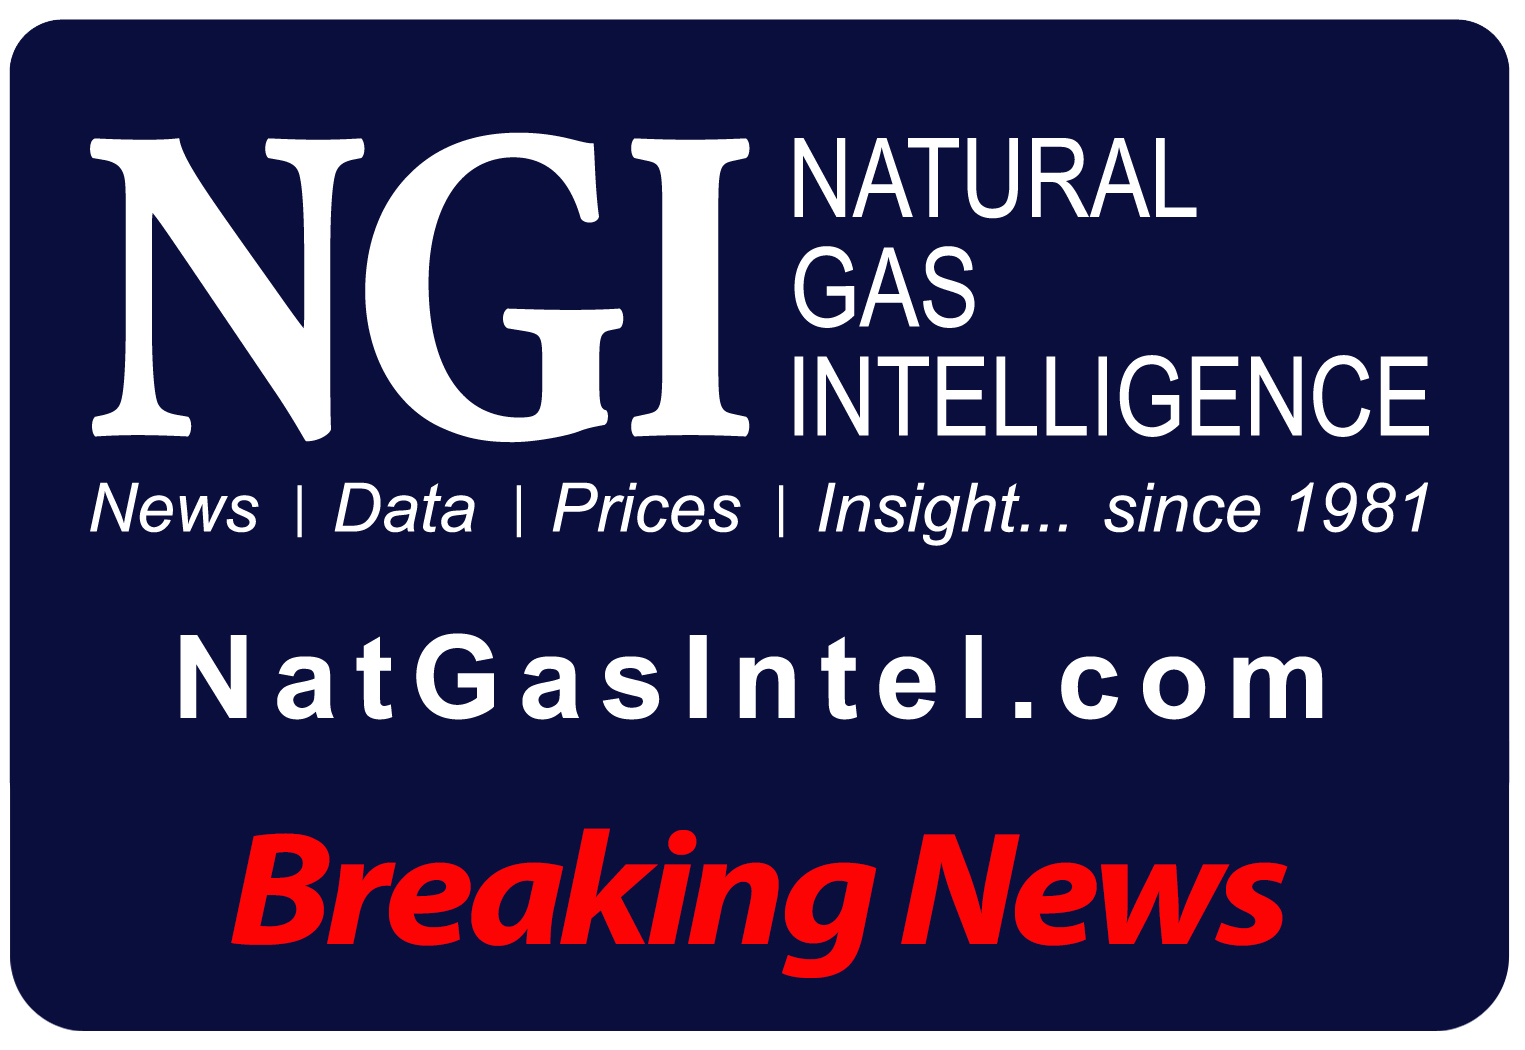 Spot Natural Gas Prices Surge to $600 as Deep Freeze Cuts Production, Fuels Record Demand - Natural Gas Intelligence